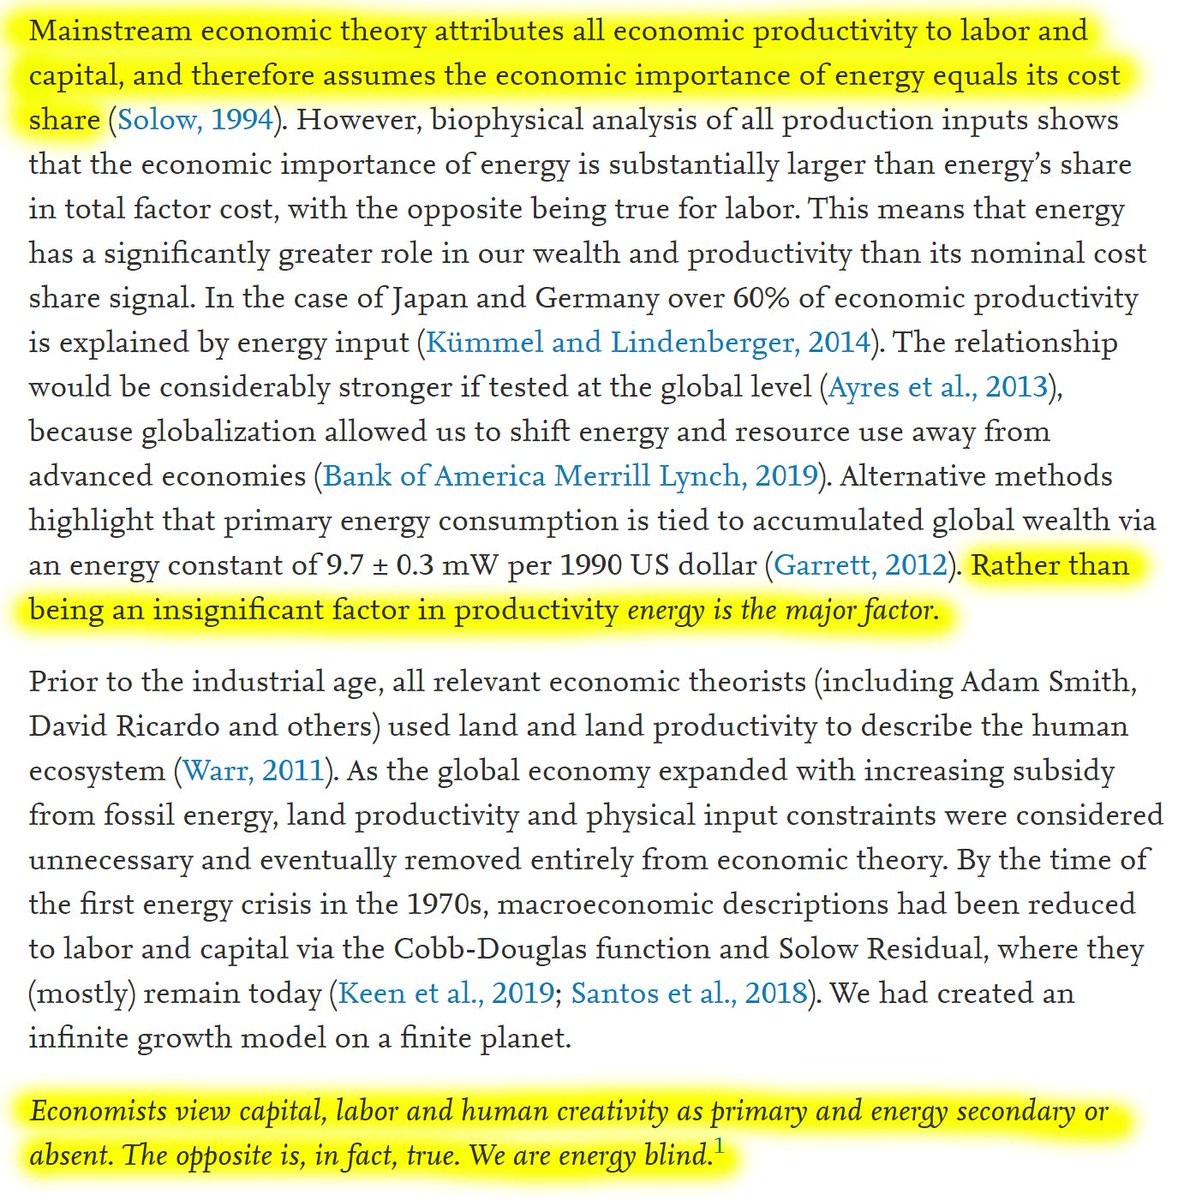 """22/60 """"Mainstream economics attribute all economic productivity to labor and capital, and therefore assumes the economic importance of energy equals its cost share.""""""""Rather than being an insignificant factor in productivity 𝘦𝘯𝘦𝘳𝘨𝘺 𝘪𝘴 𝘵𝘩𝘦 𝘮𝘢𝘫𝘰𝘳 𝘧𝘢𝘤𝘵𝘰𝘳."""""""